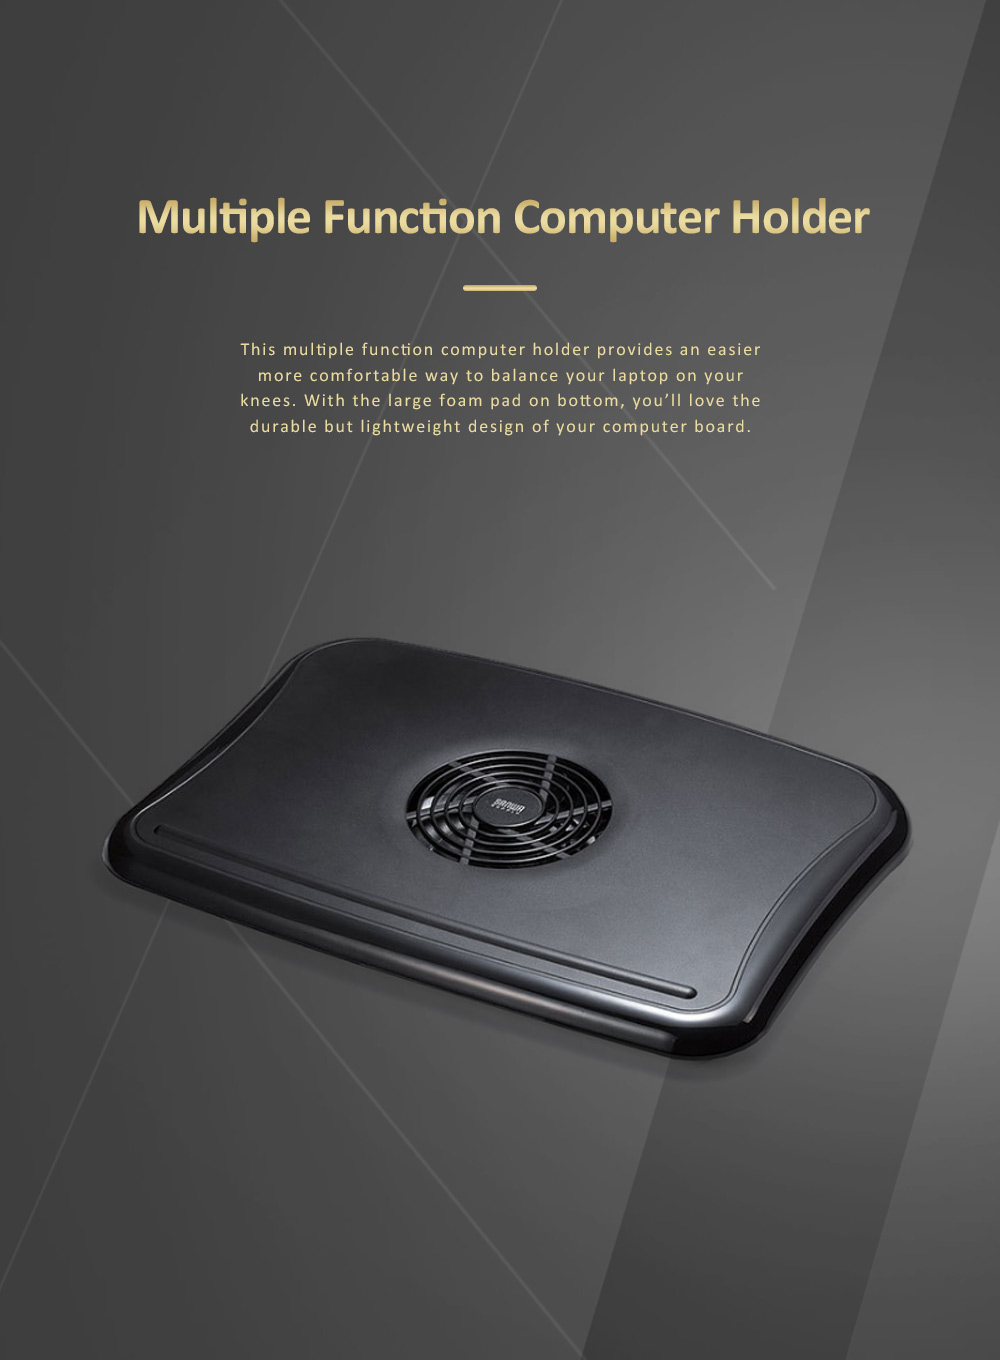 Multiple Functional Mute Notebook Computer Radiator, Car Borne Laptop Holder on Knees with Sponge Pad 0